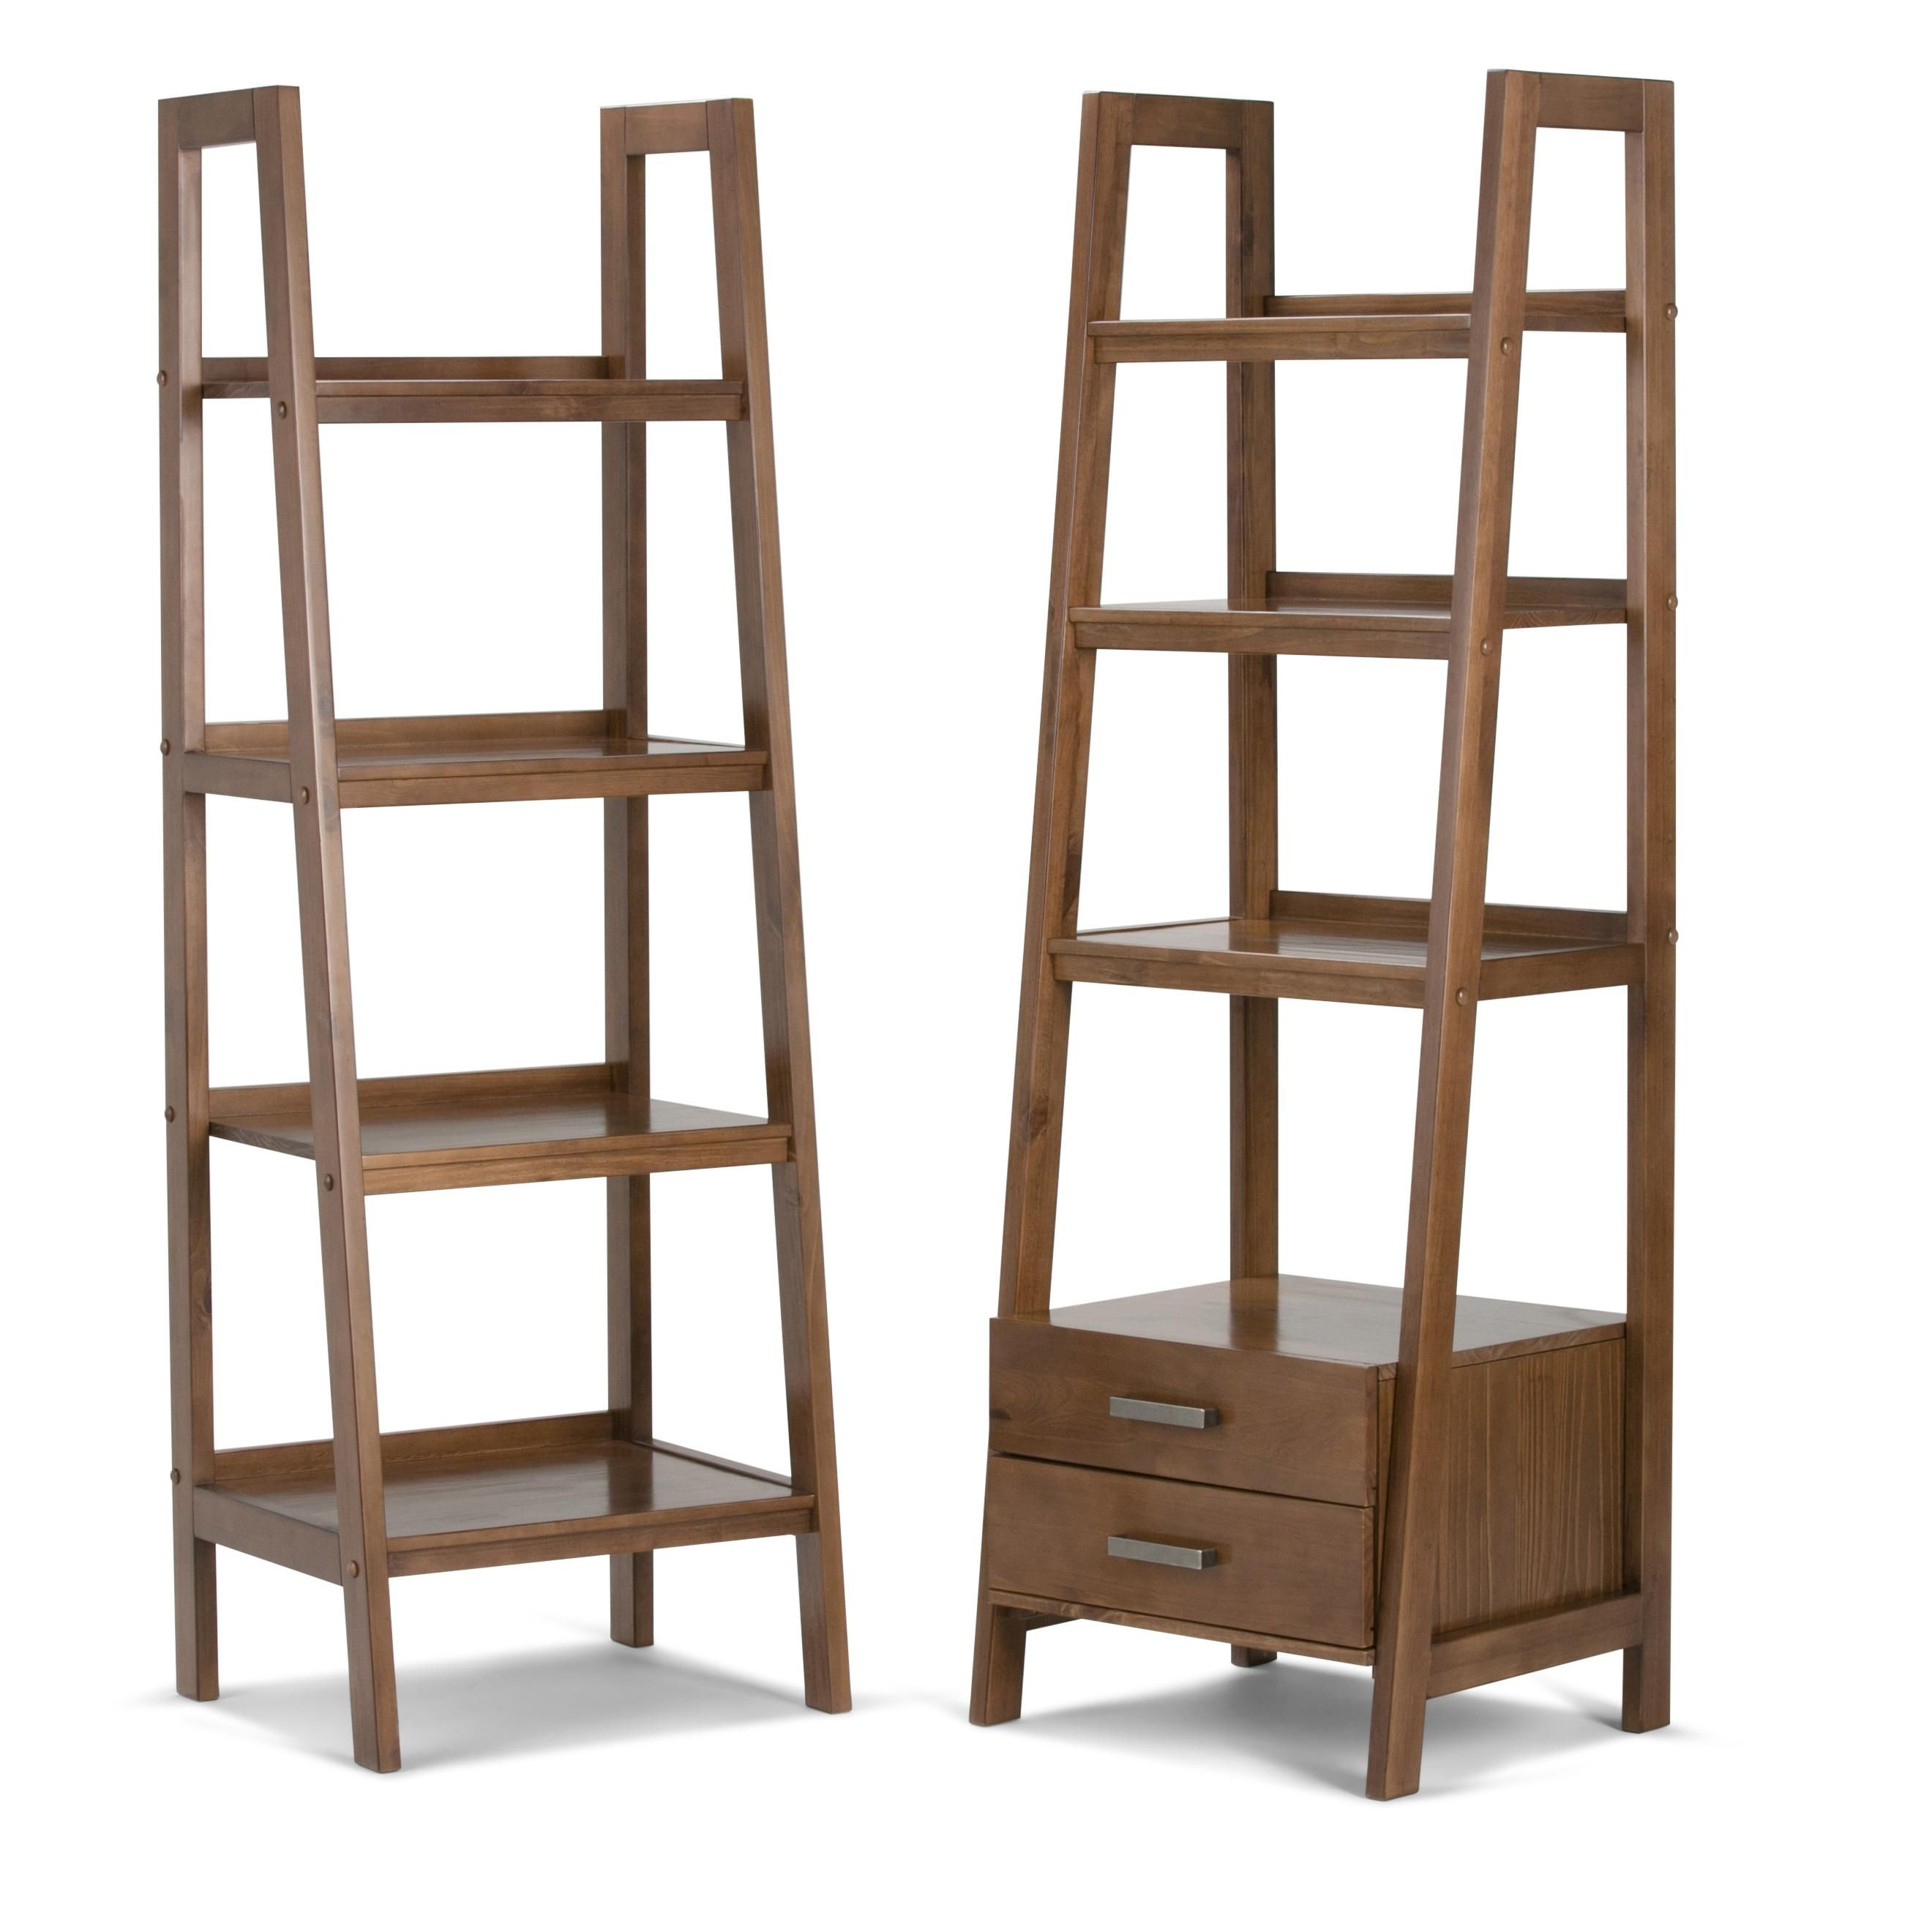 Favorite Amazon: Simpli Home Sawhorse Solid Wood Ladder Shelf Intended For Bordelon Slatted Ladder Bookcases (View 10 of 20)